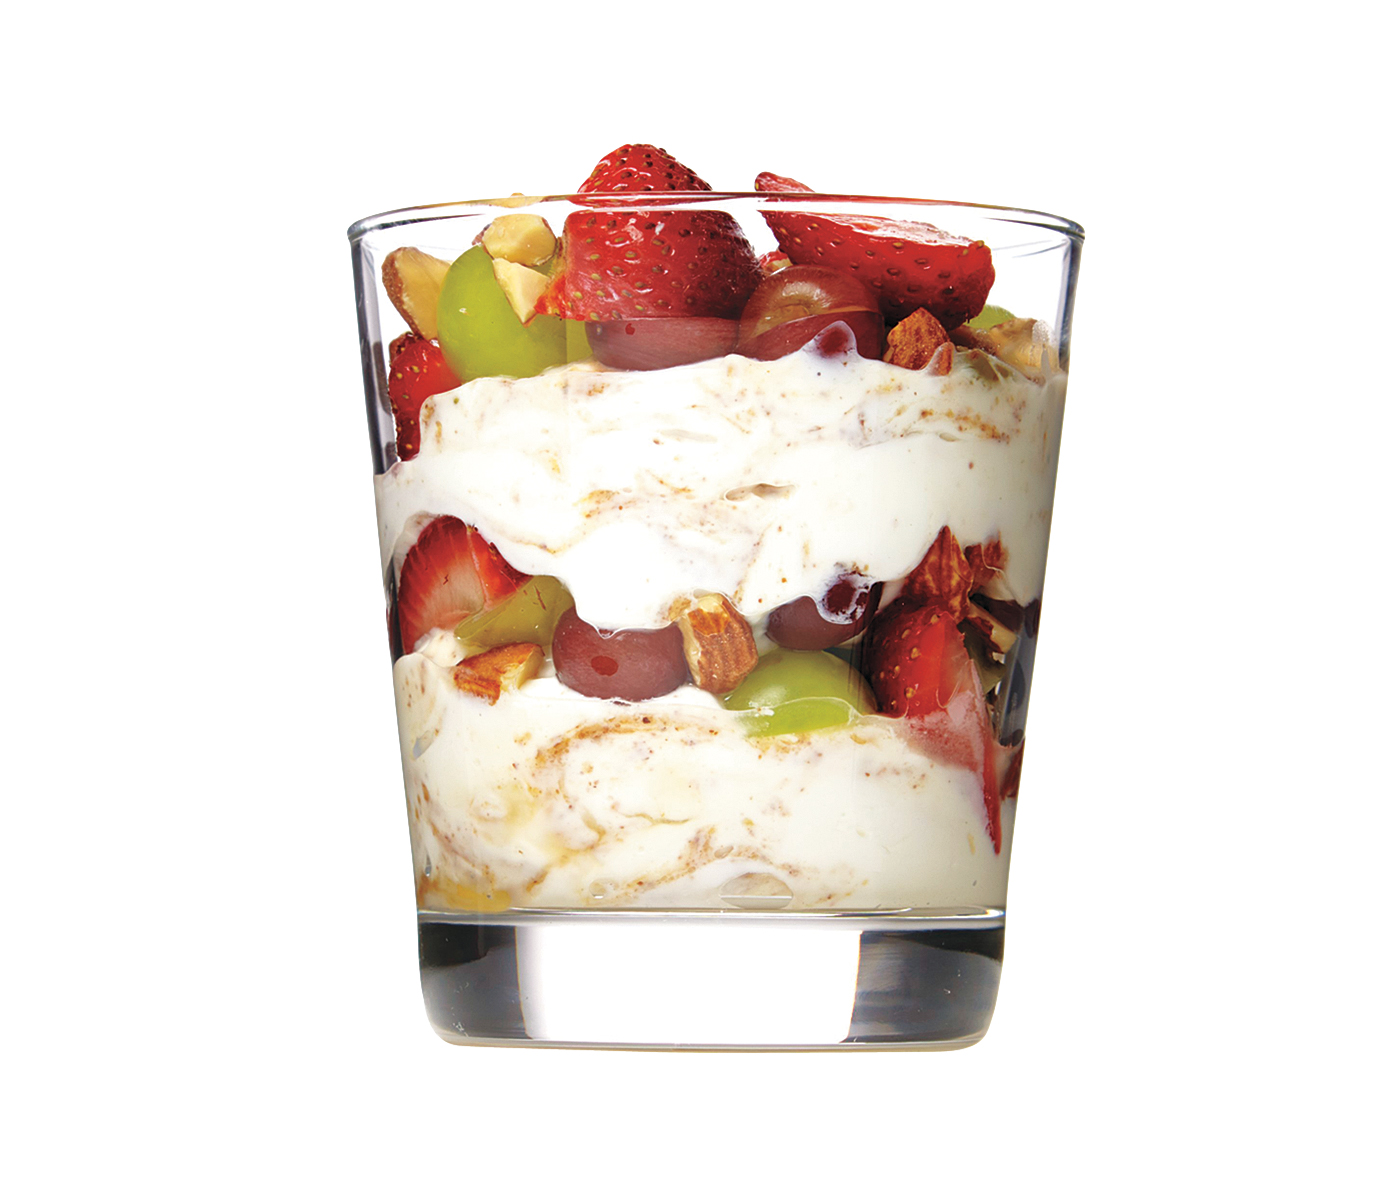 Almond Butter, Yogurt, and Fruit Parfaits